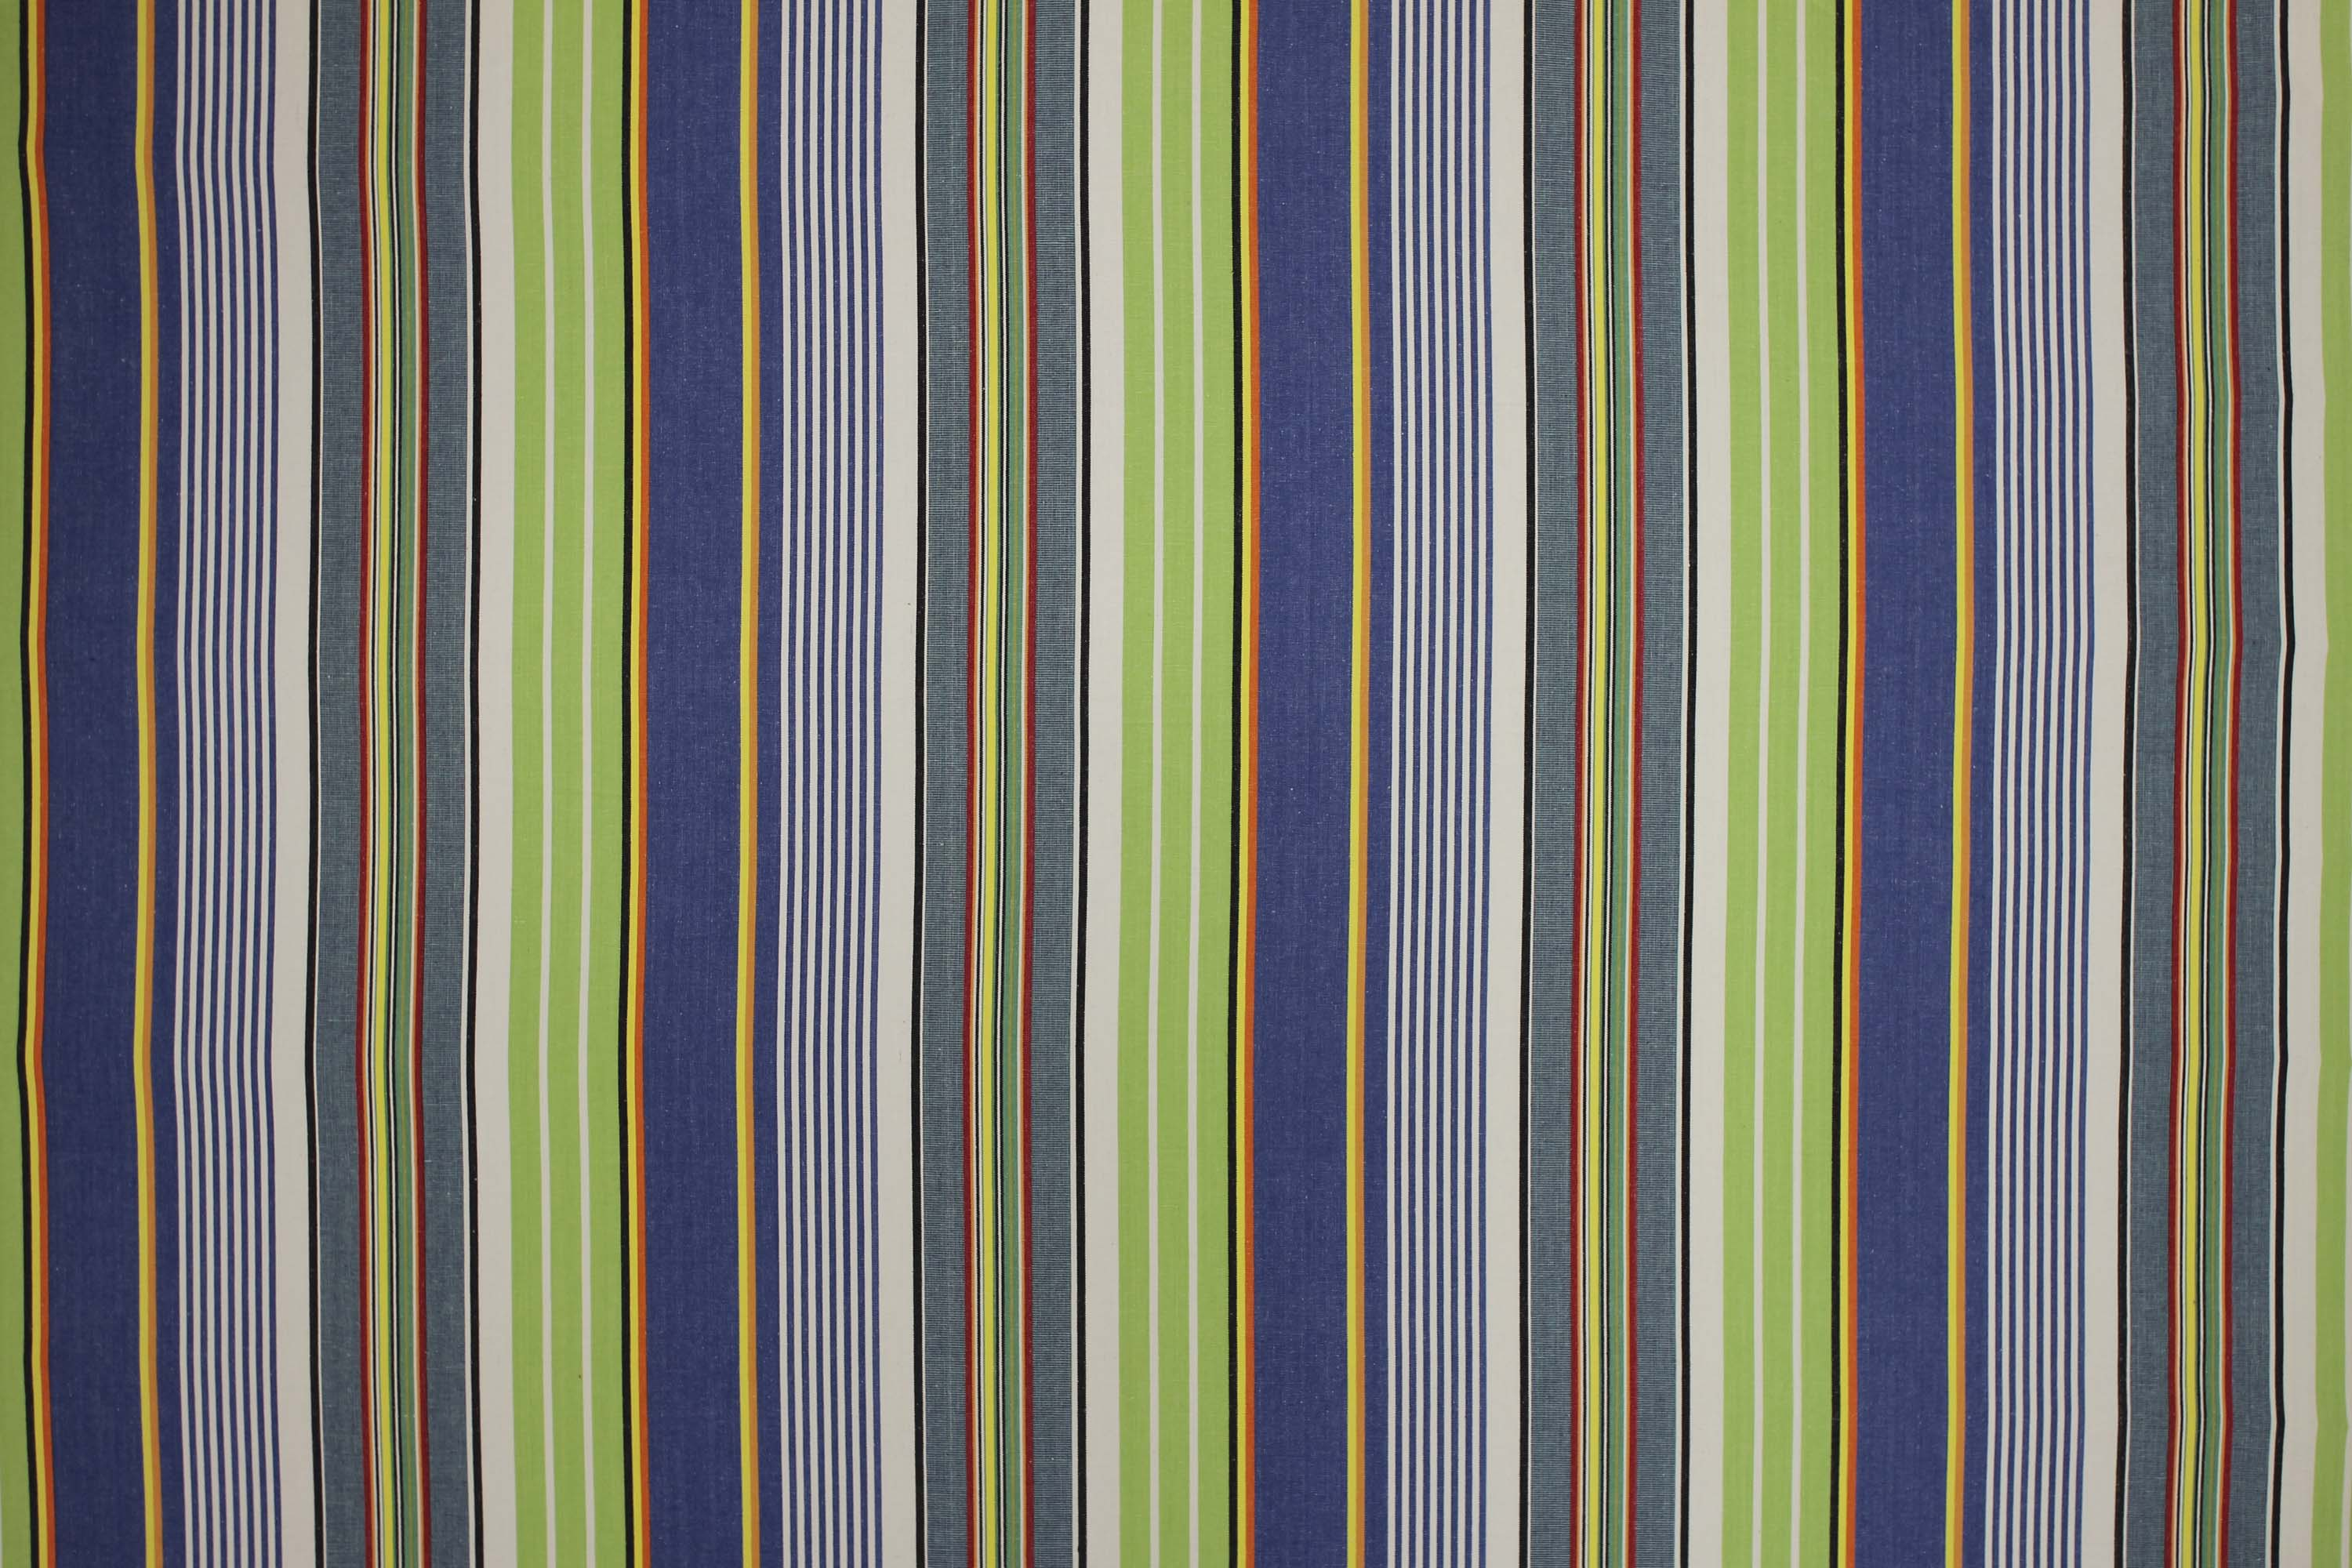 Blue and Green Striped Fabric - Tumbling